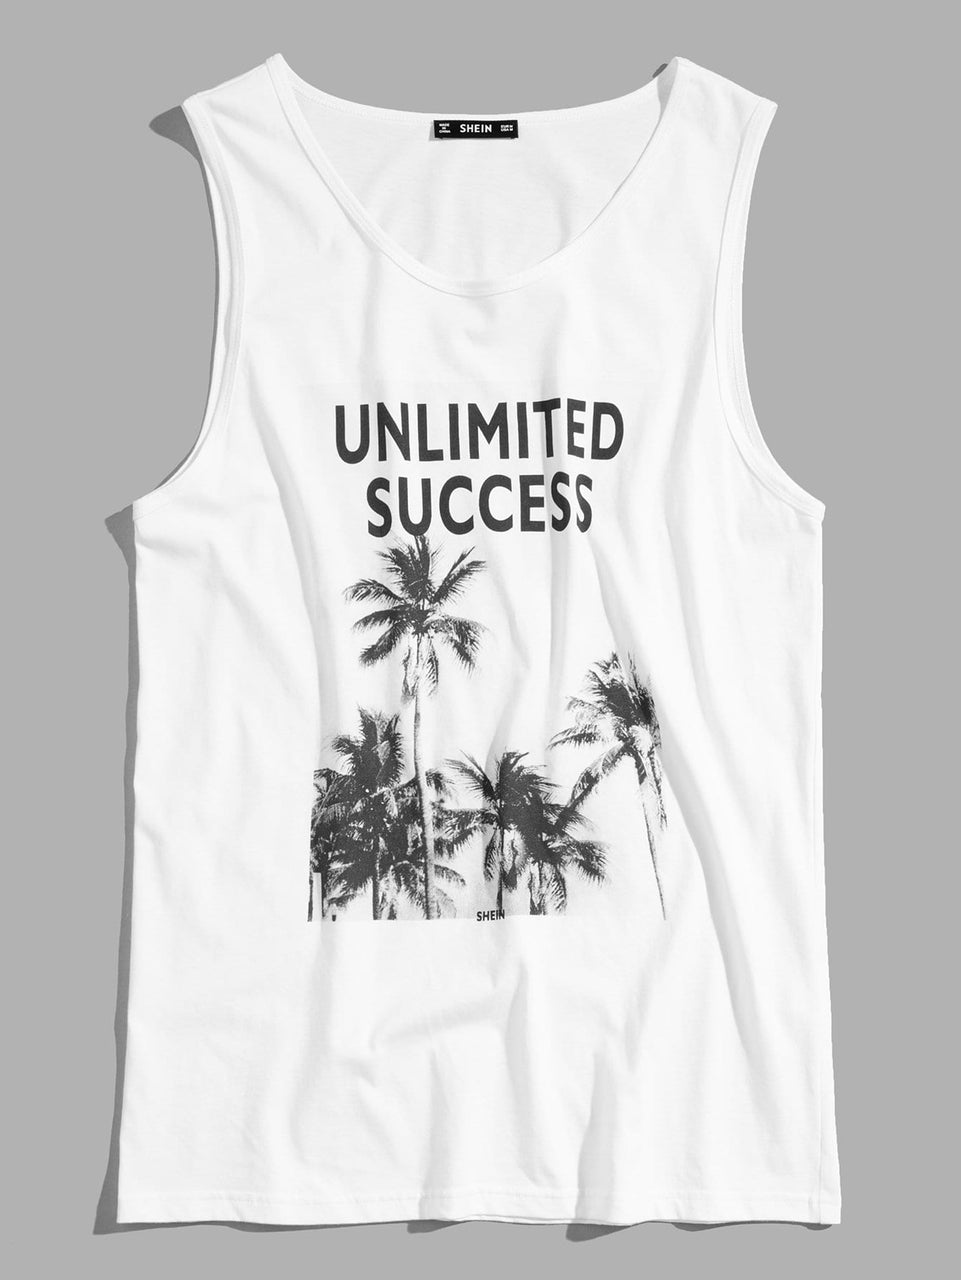 UNLMTD SUCCESS - MIXT Apparel